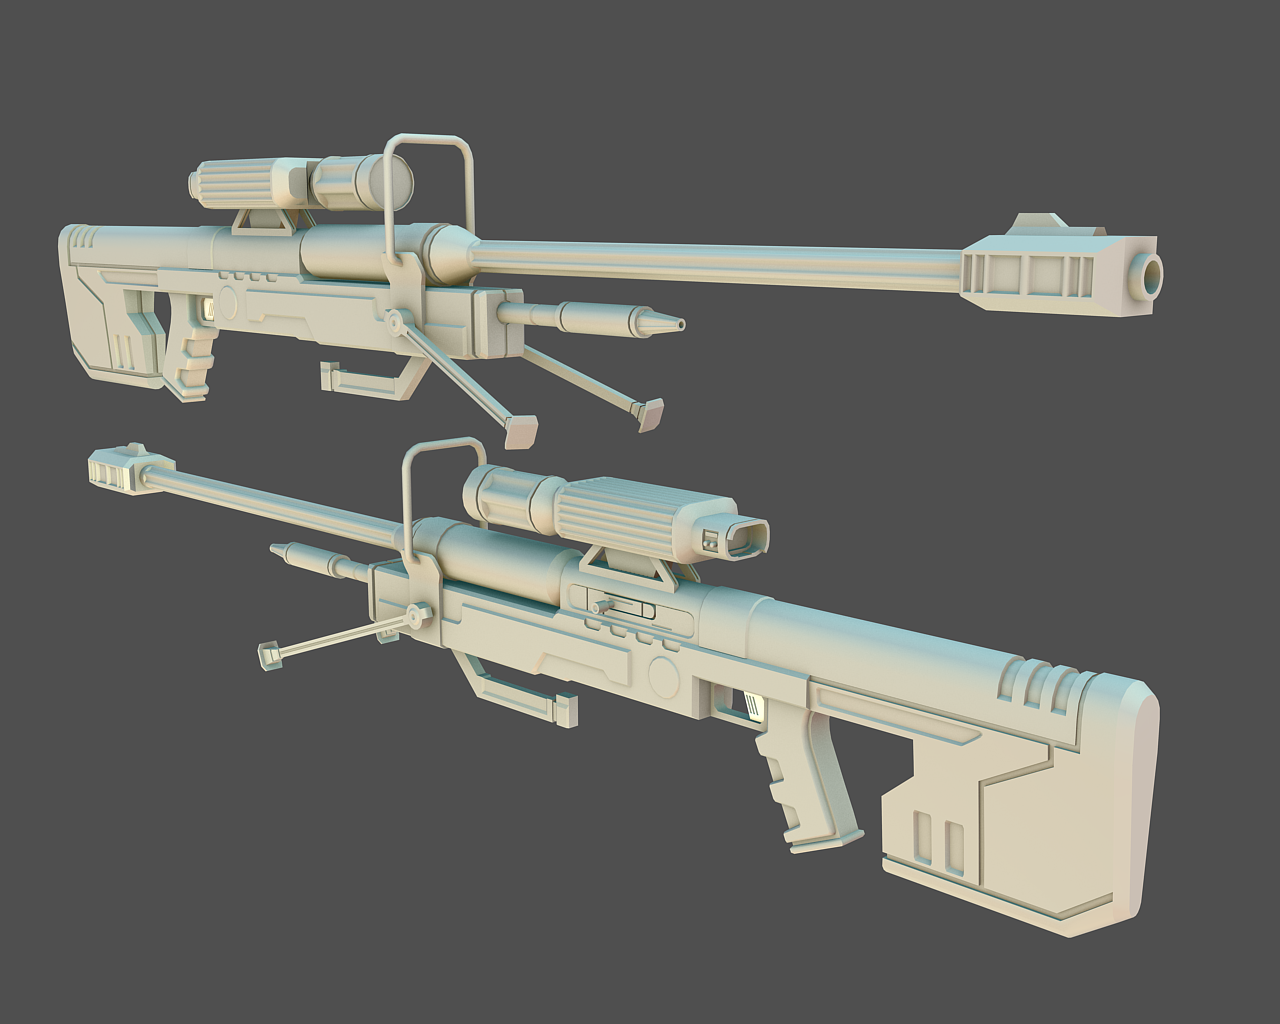 Halo 3 Sniper Rifle - SRS99D